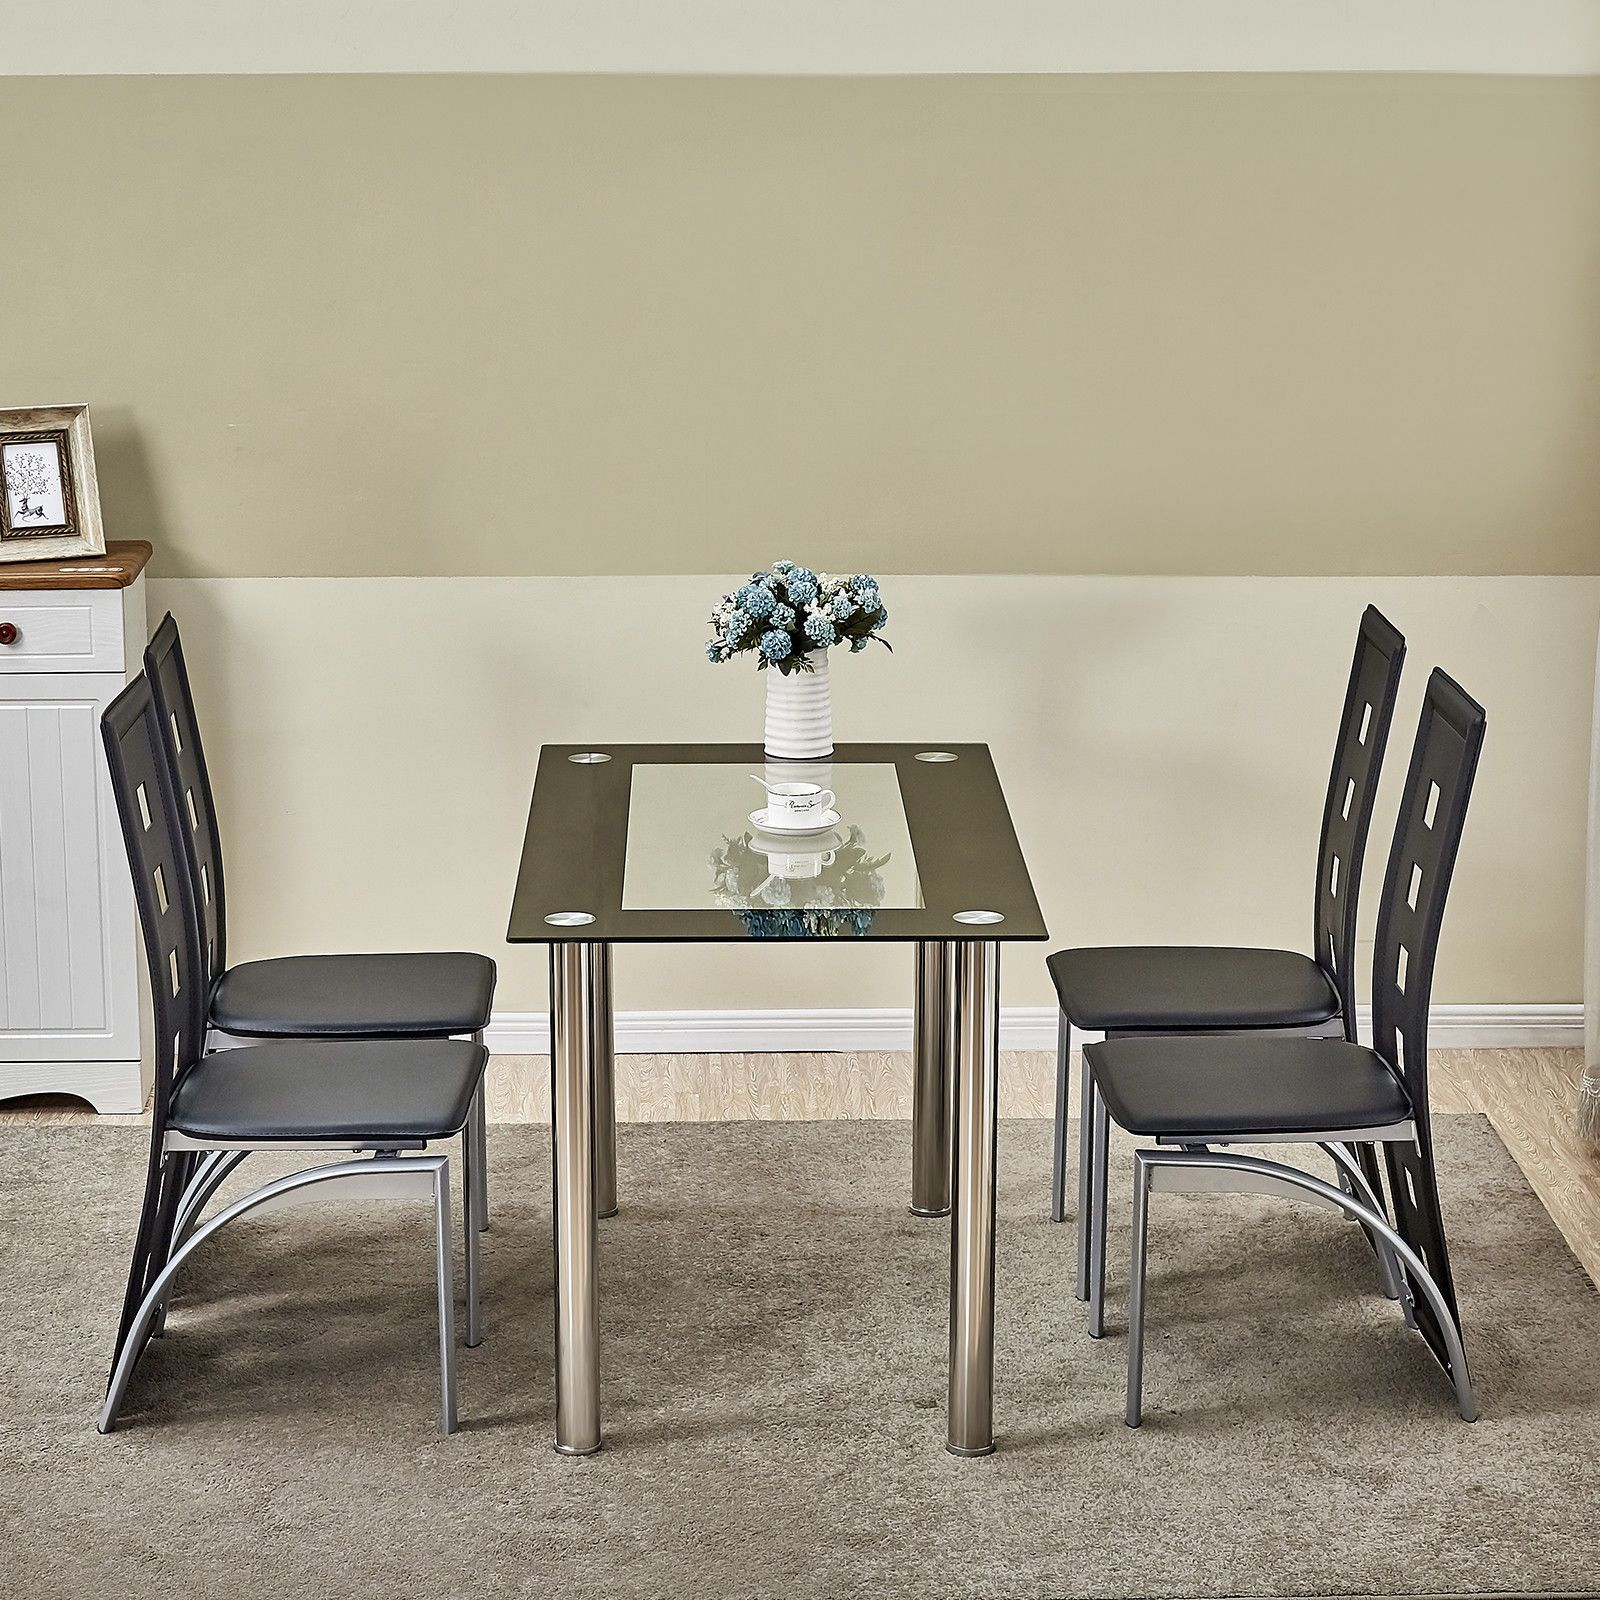 5 Piece Glass Dining Table Set W Chair Kitchen Furniture